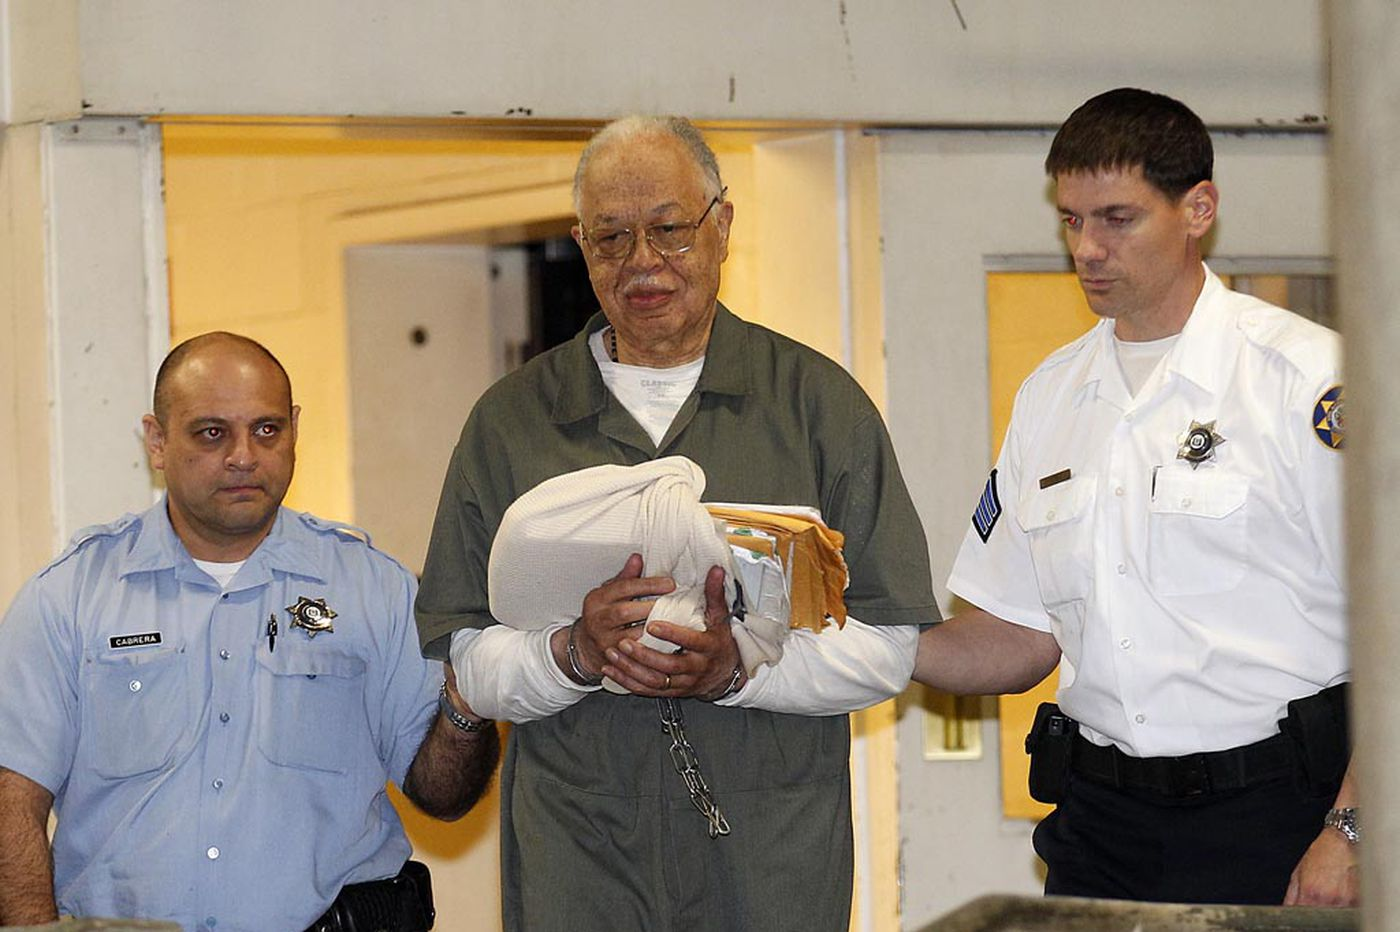 Kermit Gosnell movie tells the ignored story of 'America's biggest serial killer' | George Will